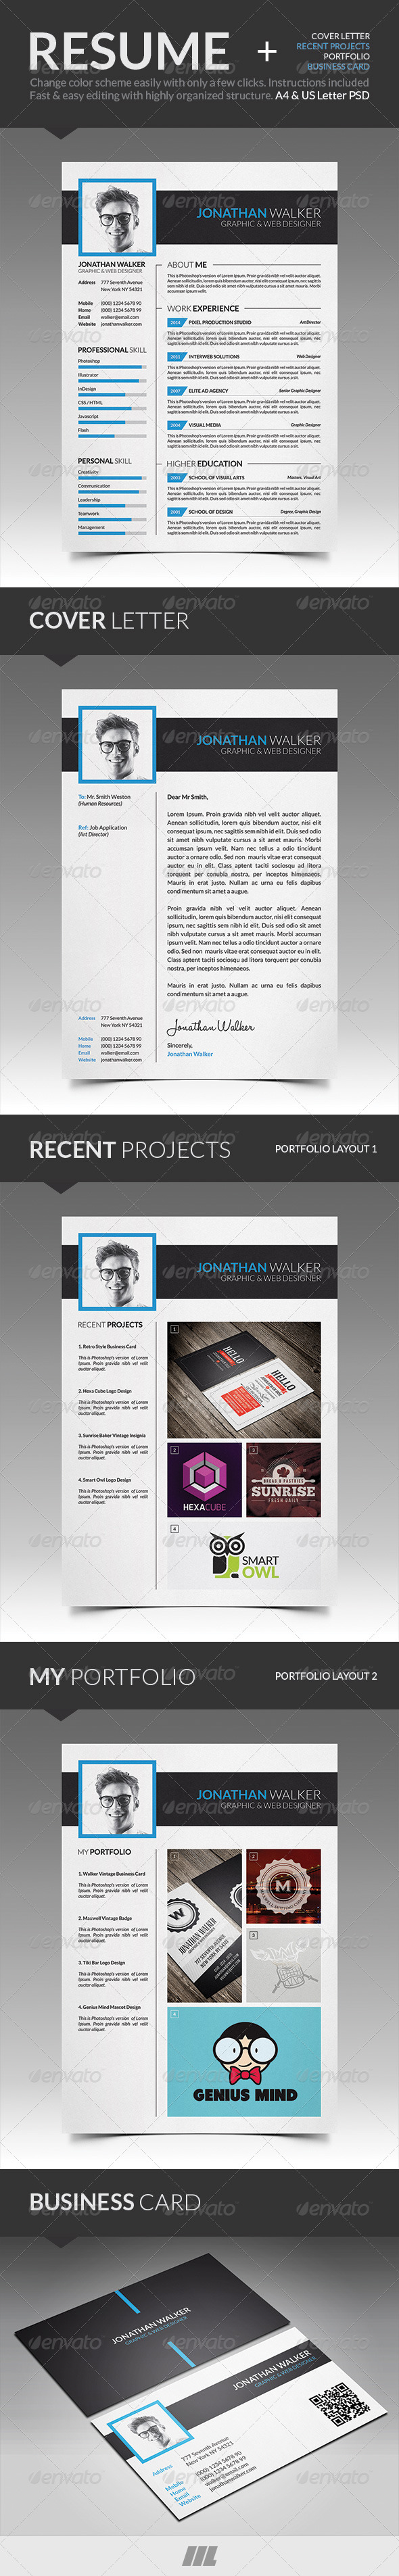 GraphicRiver Modern Resume With Business Card 7741771